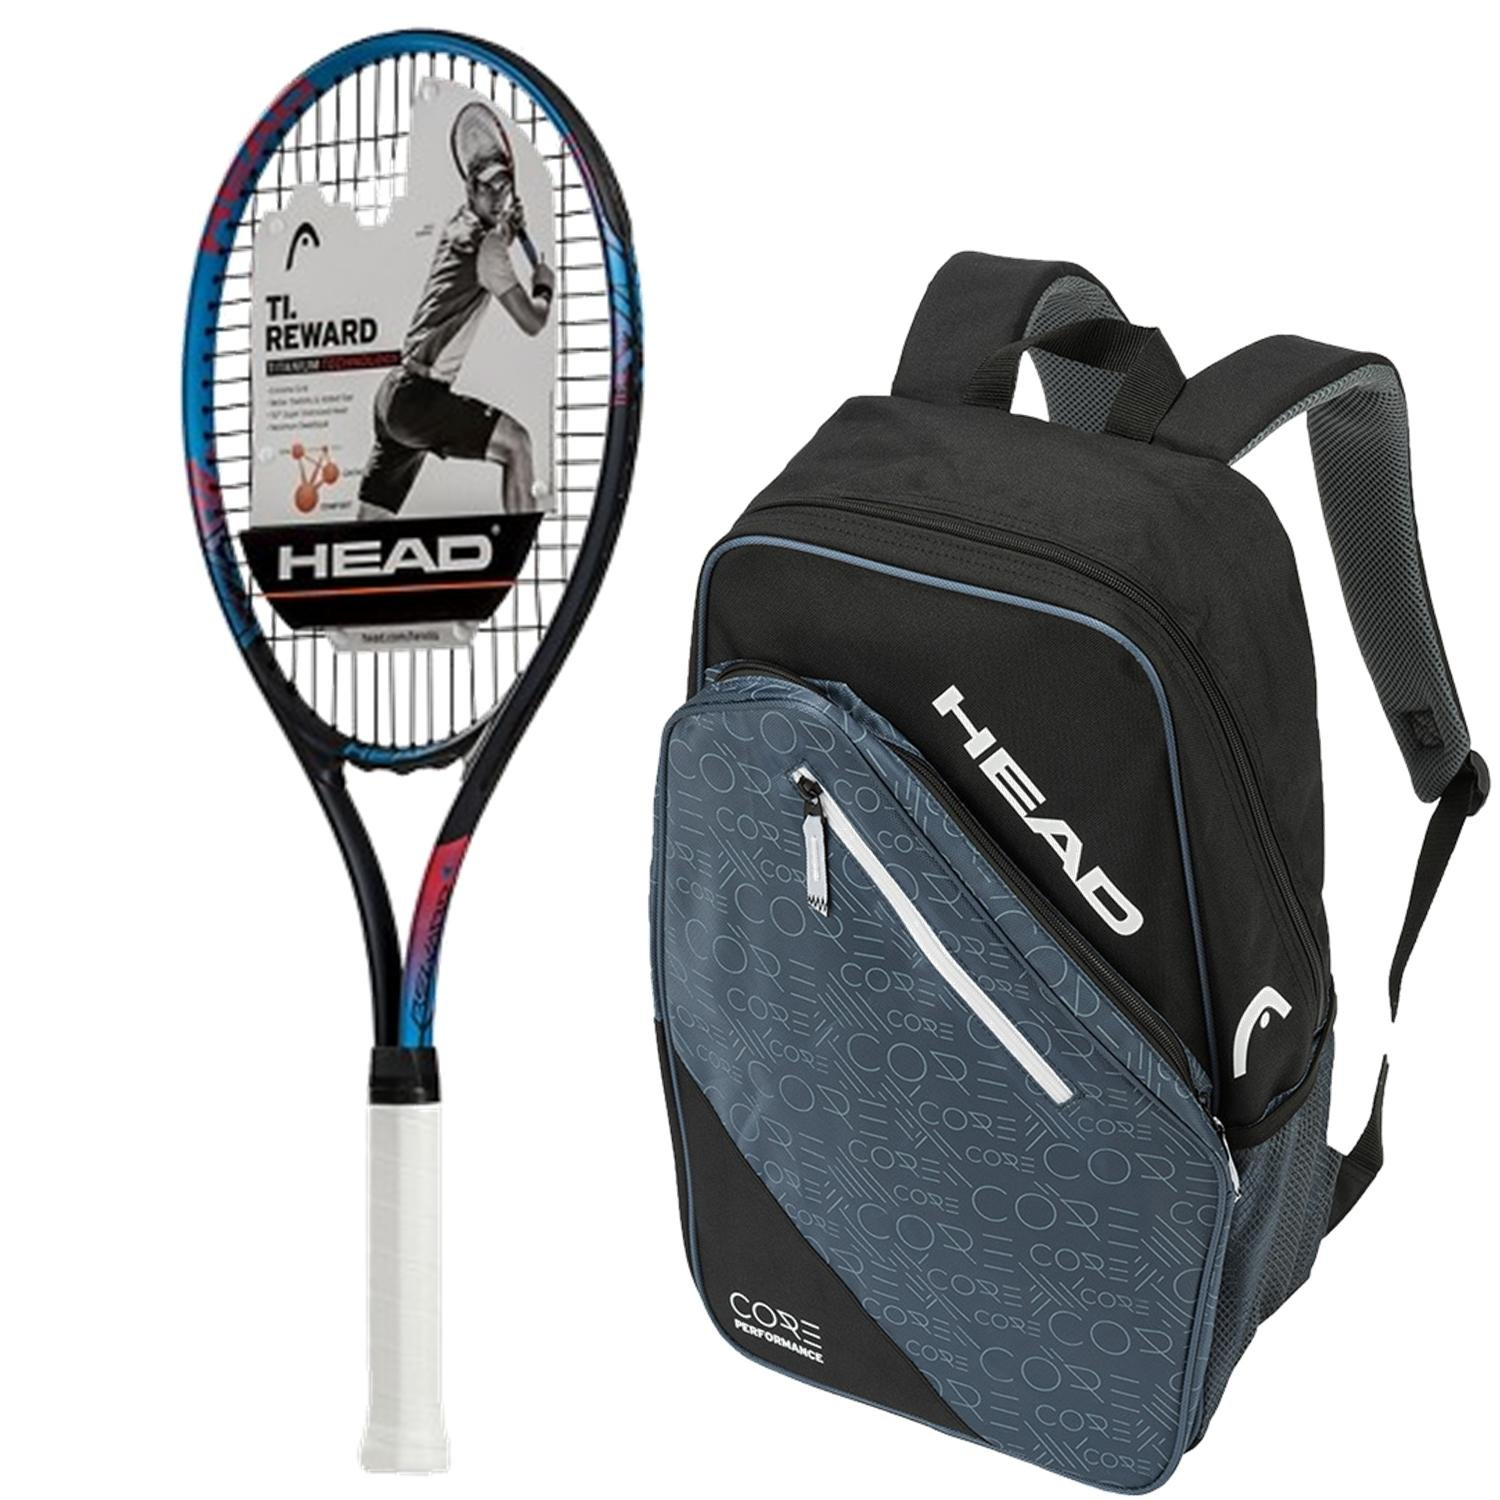 Amazon.com : Head Ti.Reward Pre-Strung Tennis Racquet bundled with a Core Tennis Bag or Backpack : Sports & Outdoors